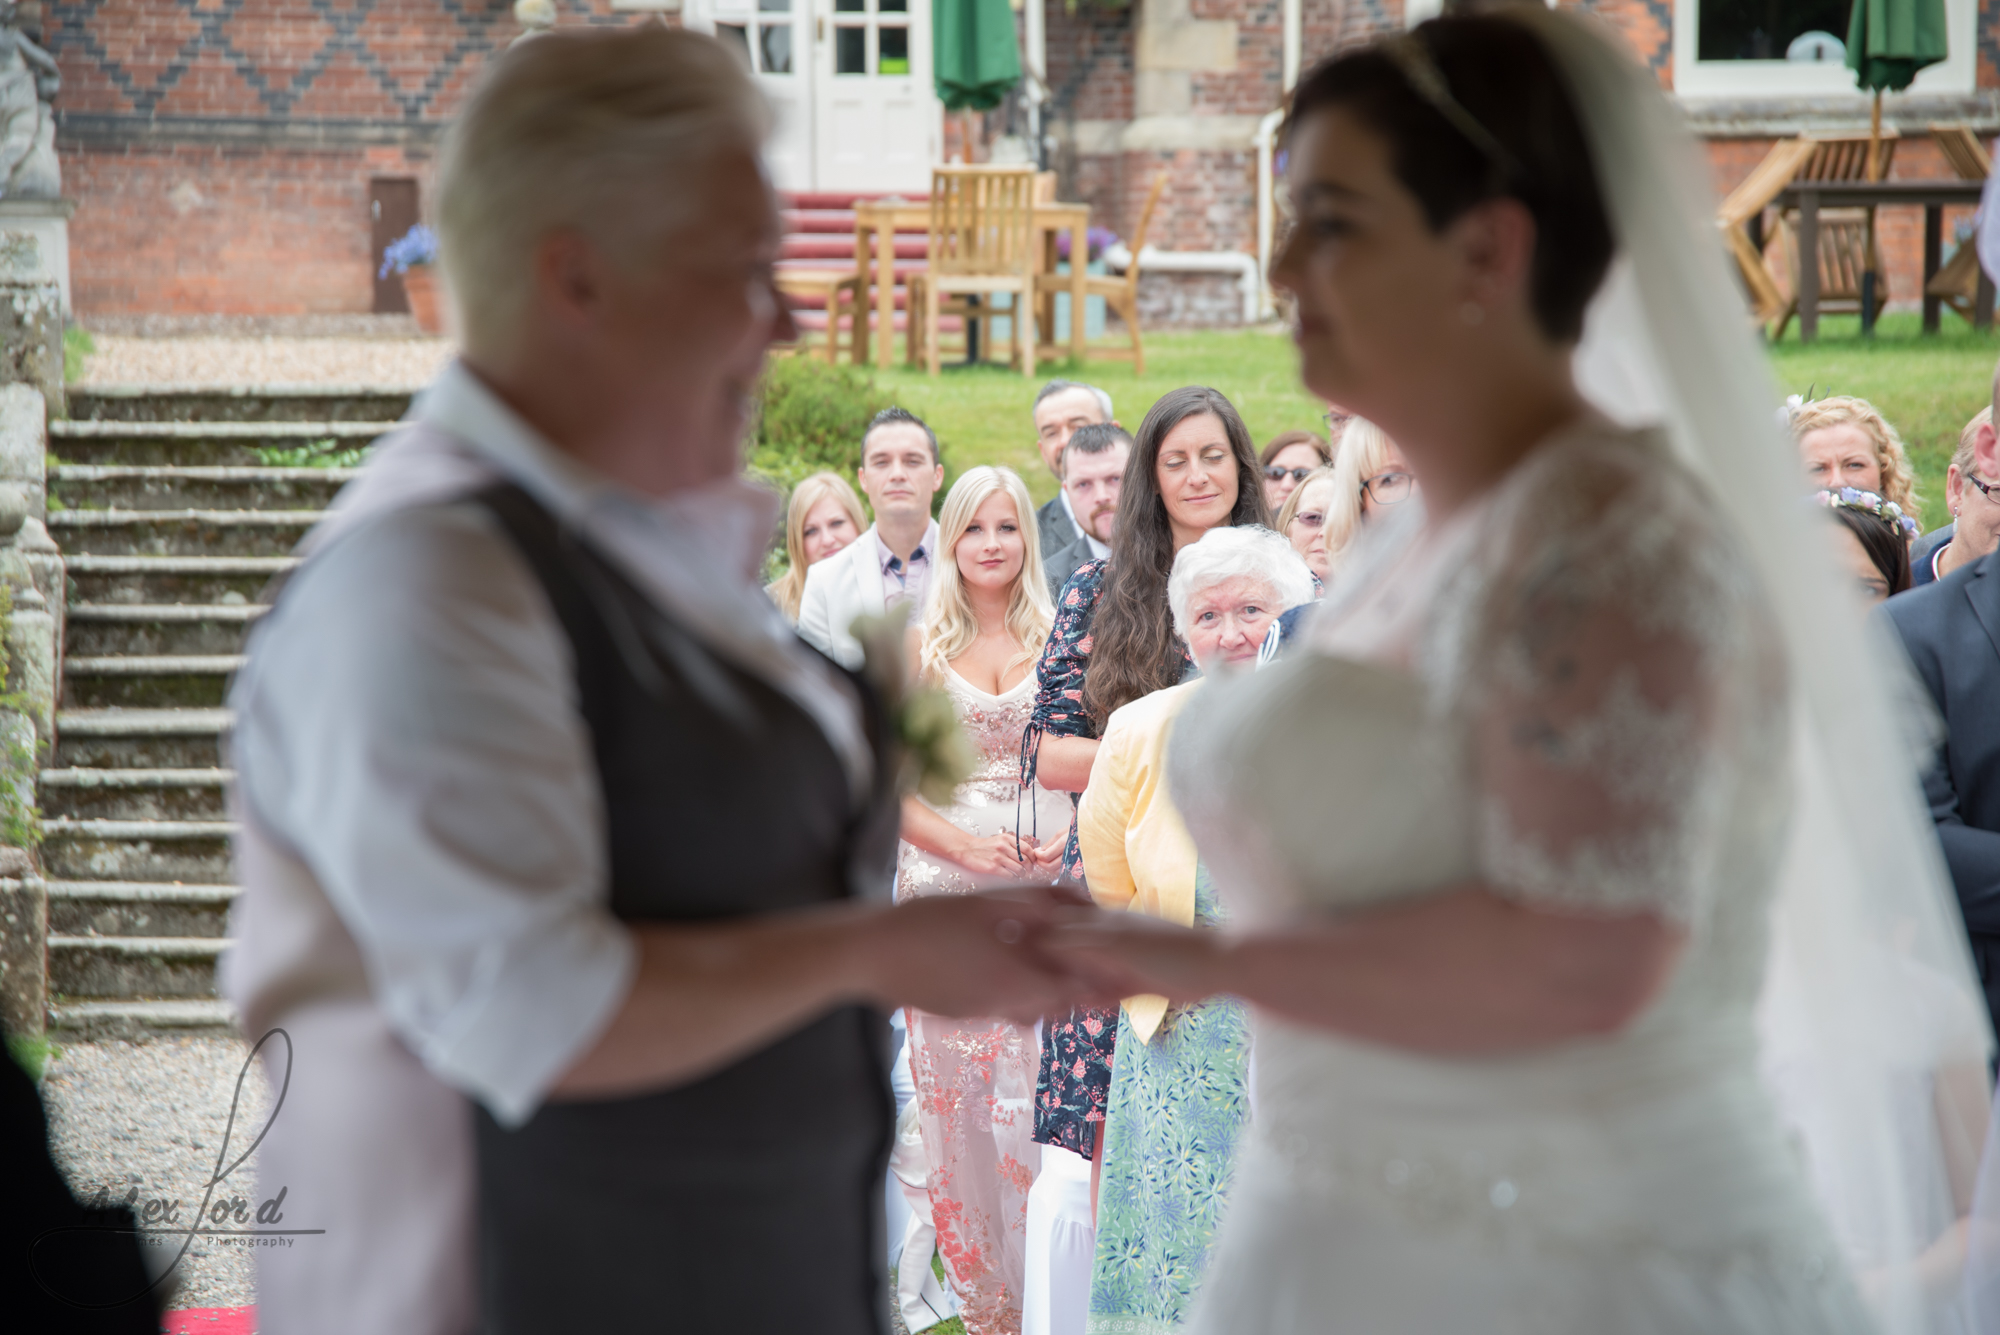 the bride and bride exchange rings during their wedding ceremony